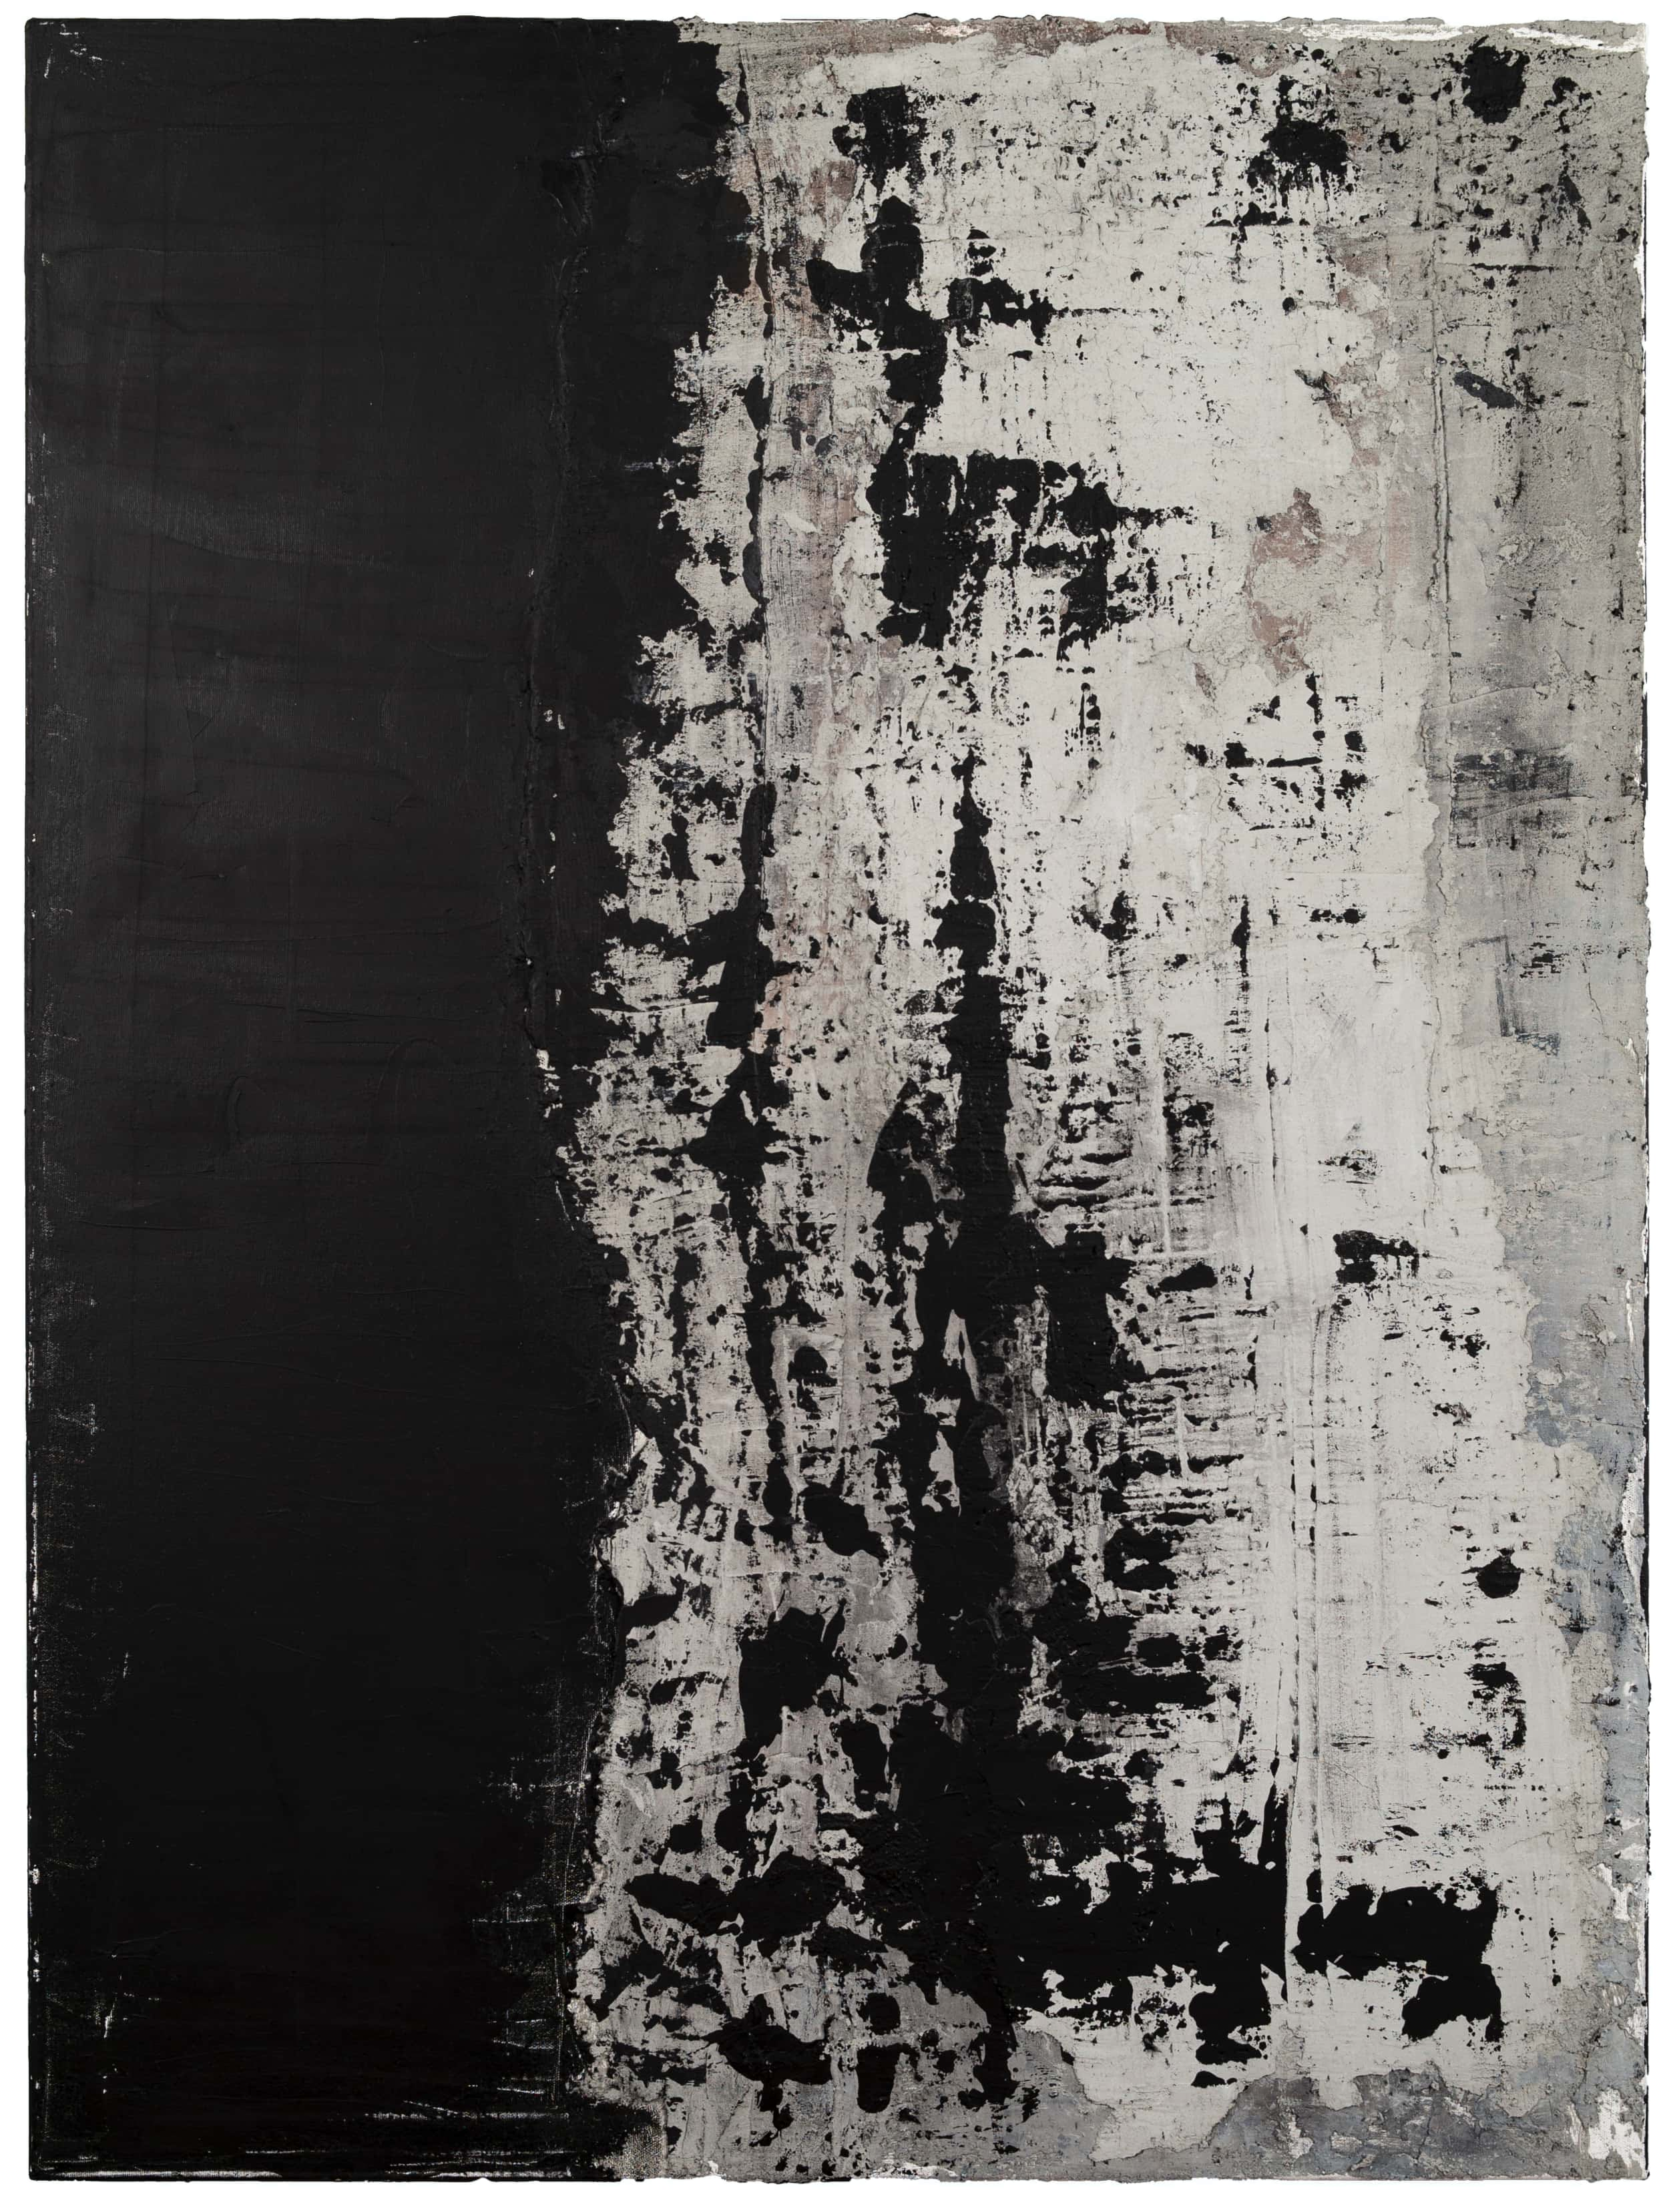 Aaron Siskind , 2019 Concrete, black gesso, oil pastel, acrylic, charcoal on canvas 40 × 30 in (101.6 × 76.2 cm)